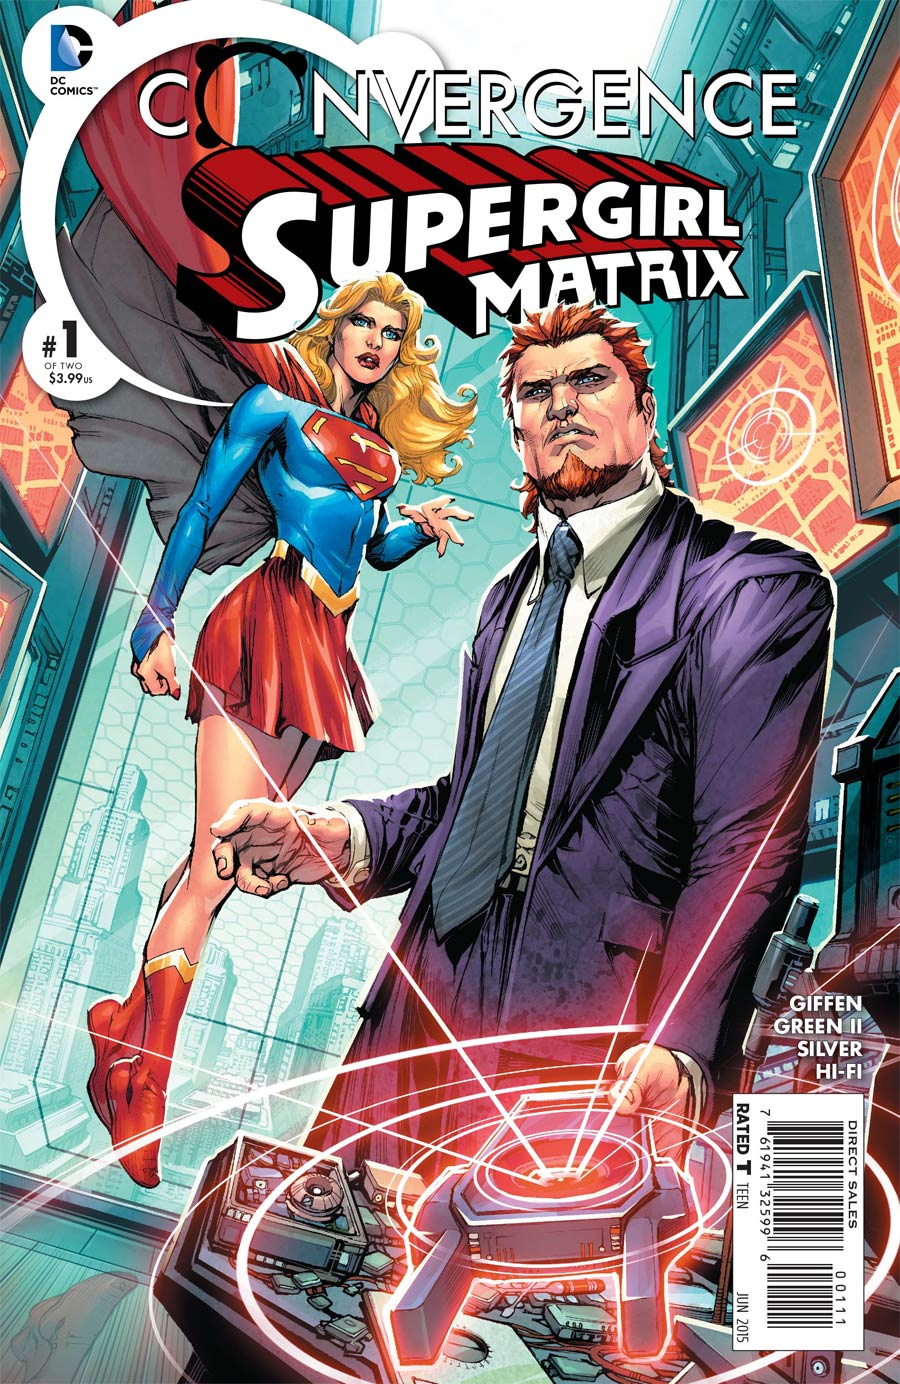 Convergence: Supergirl: Matrix #1